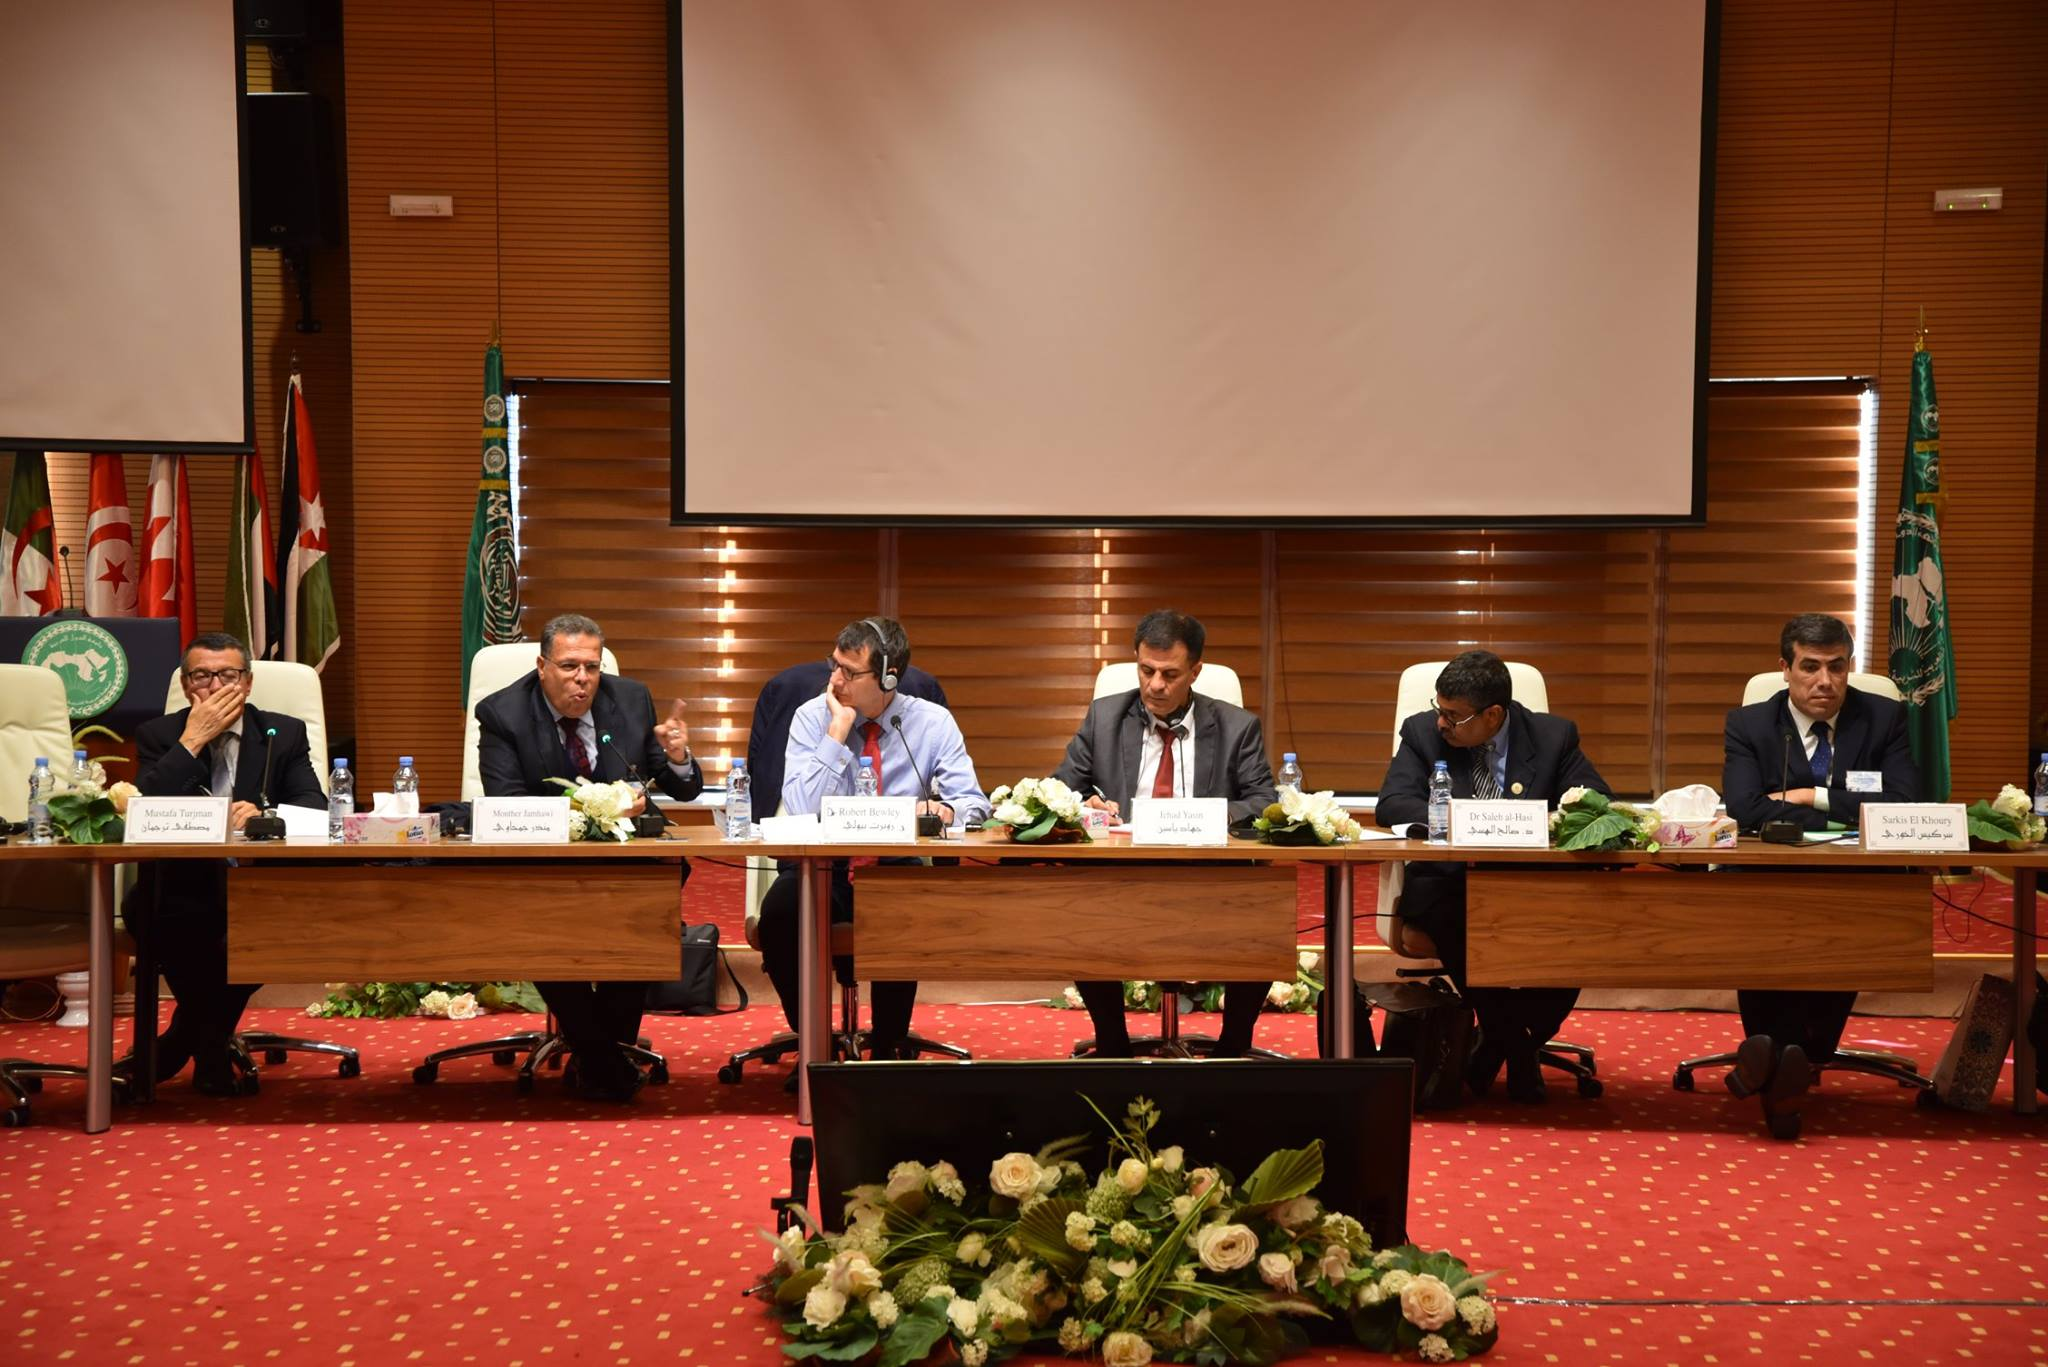 The regional round table on how to implement digital documentation and digital tools in the MENA region with Dr Monther Jamhawi (DoA, Jordan), Mustafa Turjman and Dr Saleh al-Hasi (DoA, Libya), Jehad Yasin (MoTA-DACH, Palestine), and Sarkis al-Khoury (DGA, Lebanon). Chaired by EAMENA director Dr Robert Bewley. Photo © Alecso المنظّمة العربيّة للتّربية والثّقافة والعلوم